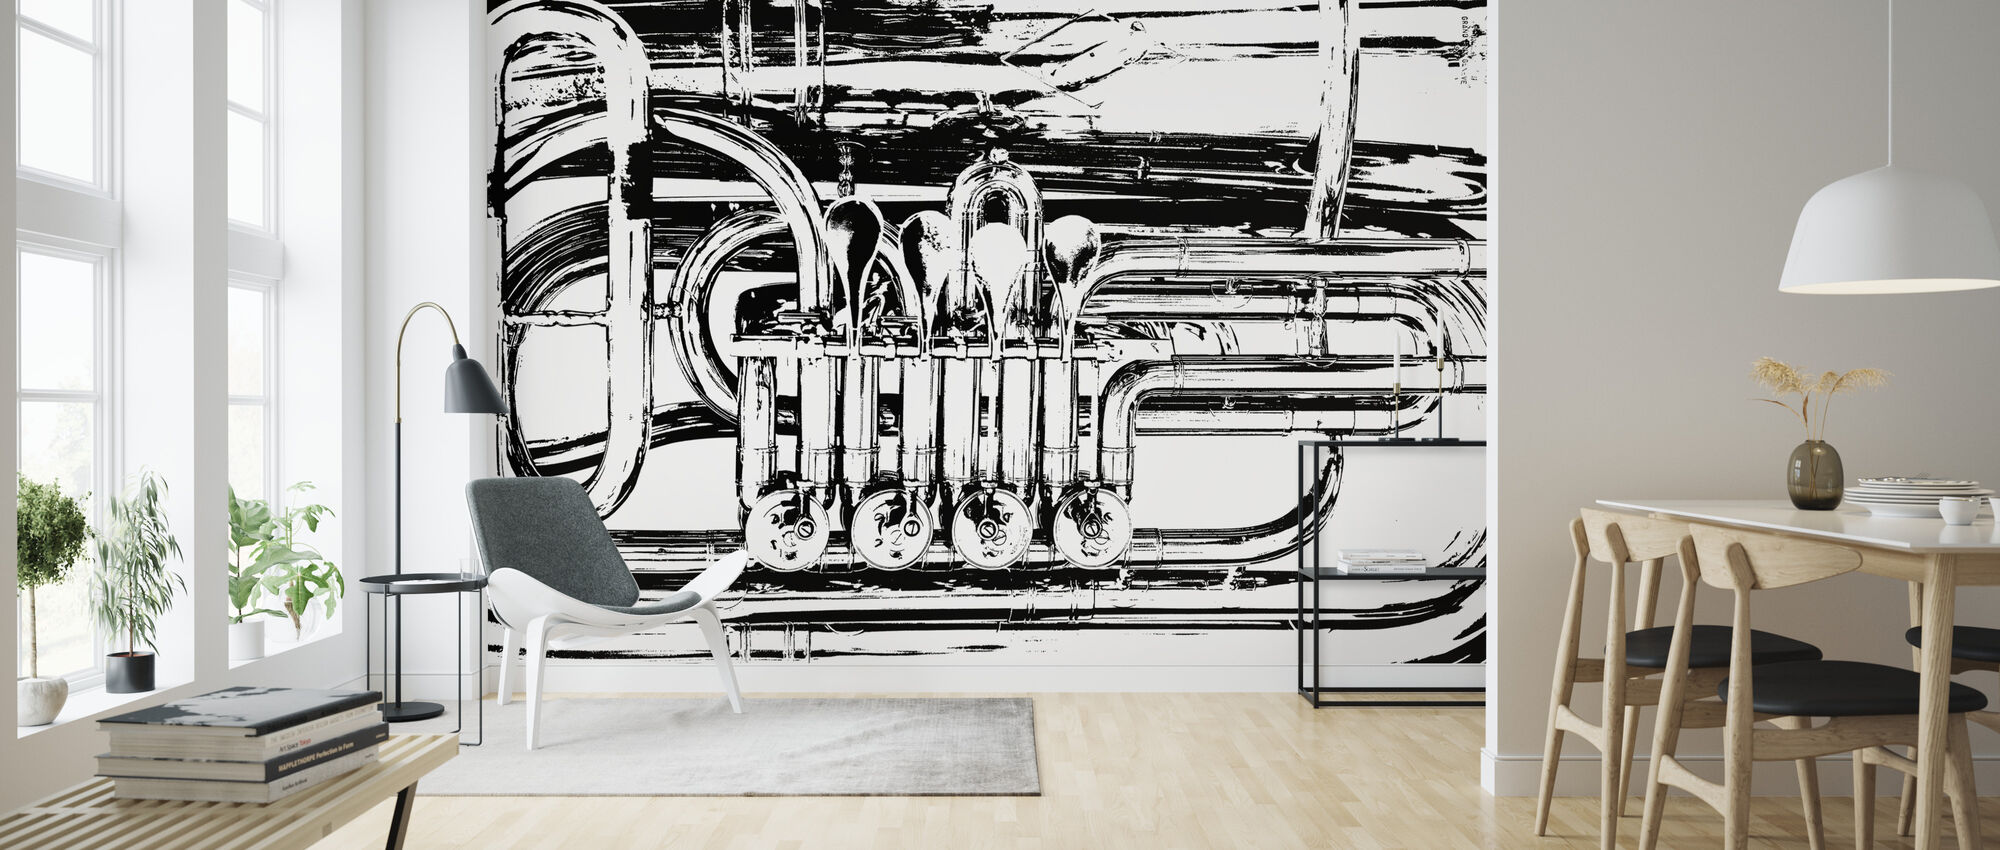 Brass Horn Valve - Graphic Tuba - Wallpaper - Living Room